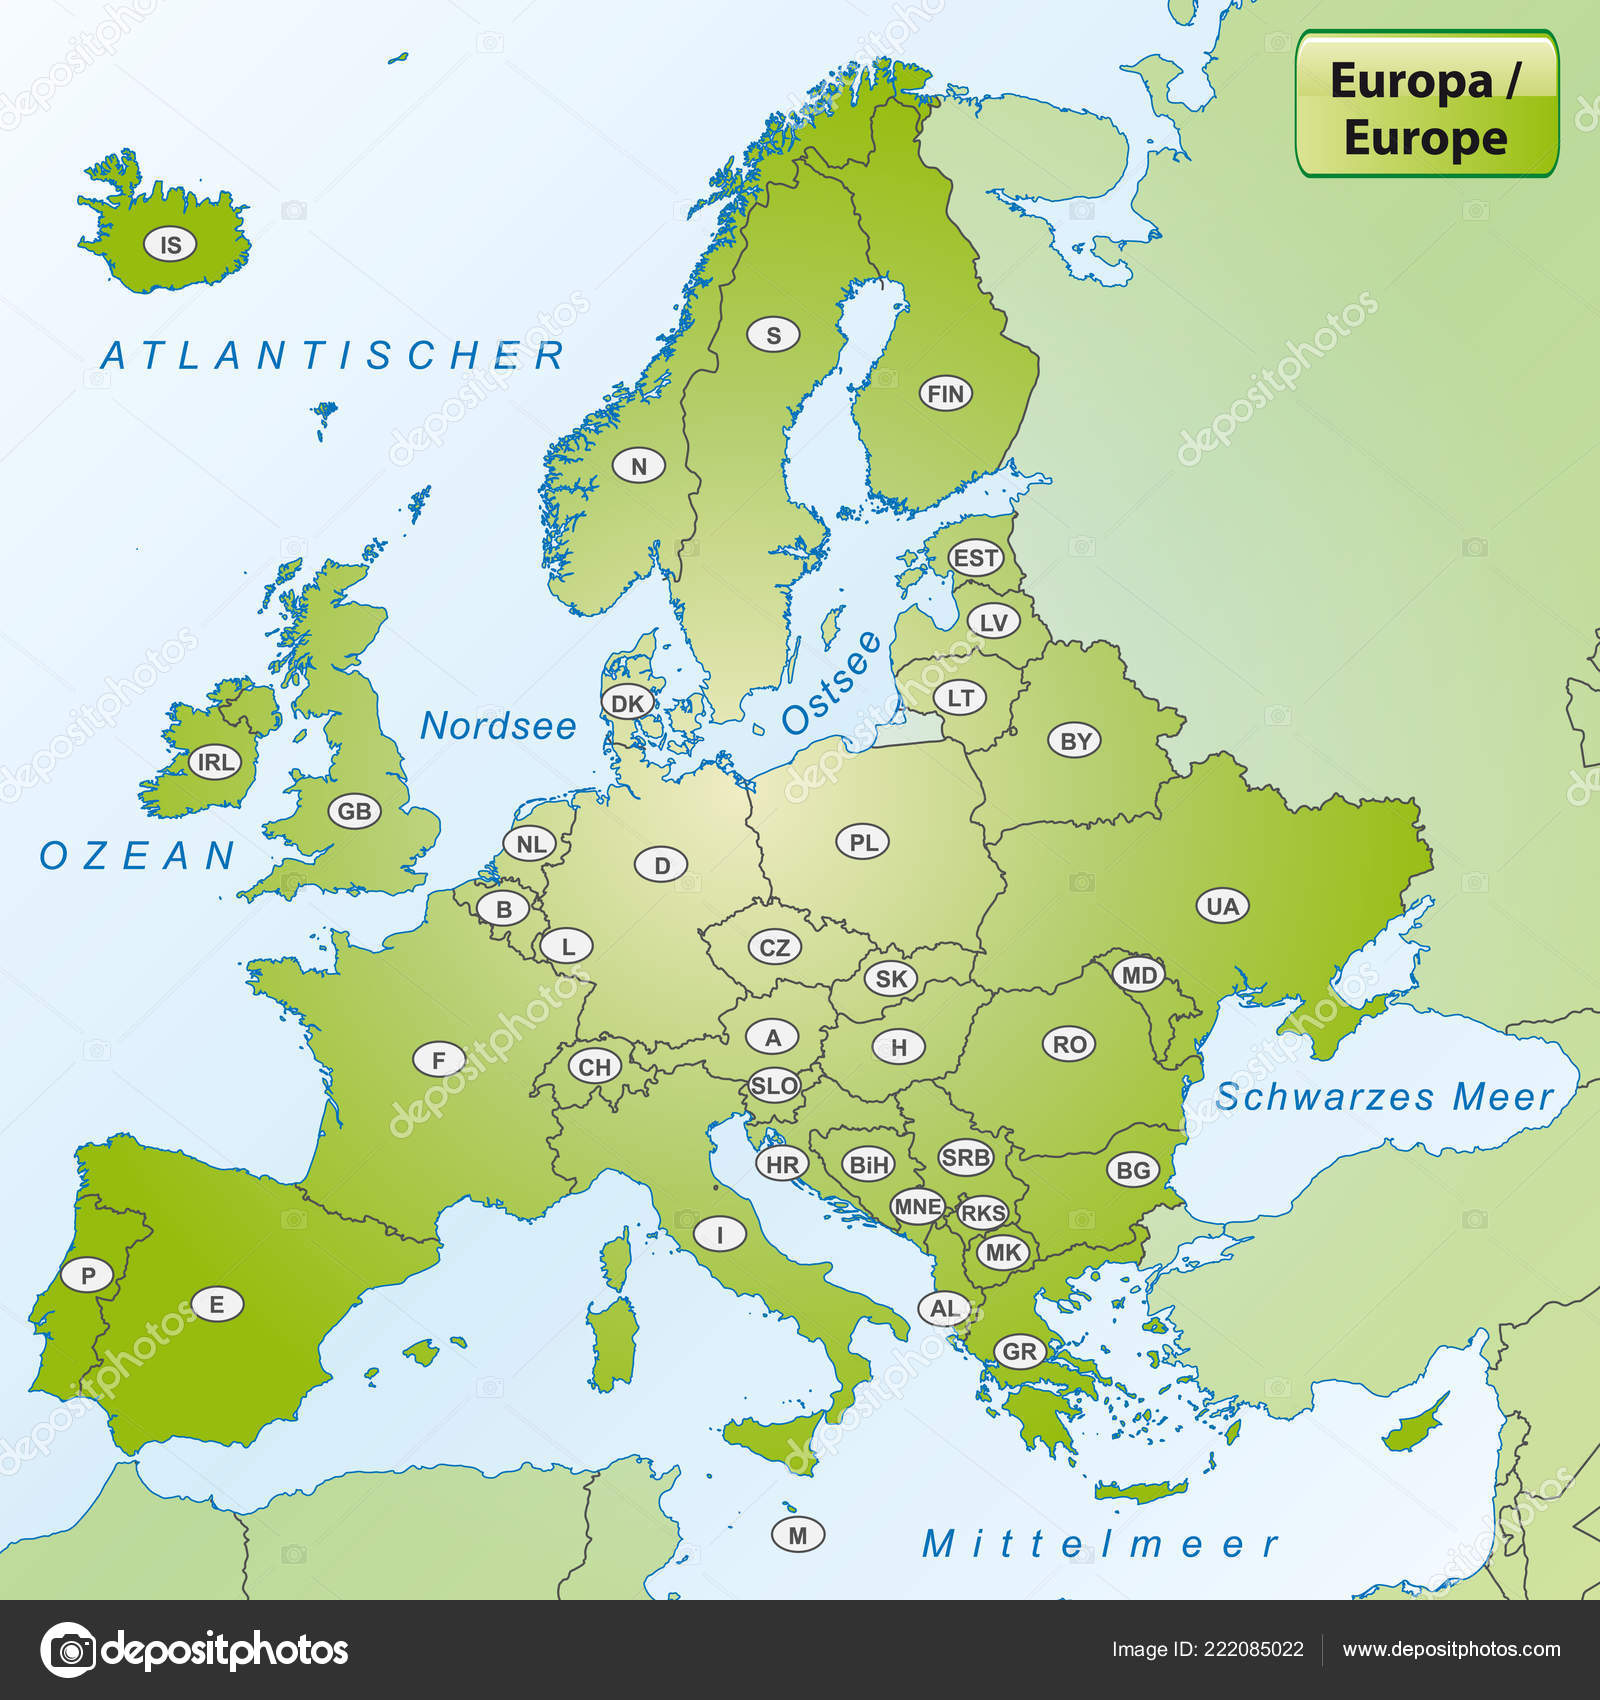 Map Europe Country Abbreviations — Stock Photo © artalis ... on map geography, map illustrations, map cambodia travel, map to mexico, map southern italy, map initials, map with compass, map time, map or, map with grid, map language, map with title, map with flags, map art projects, map notes, map quotes, map history, map diagrams, map addresses,